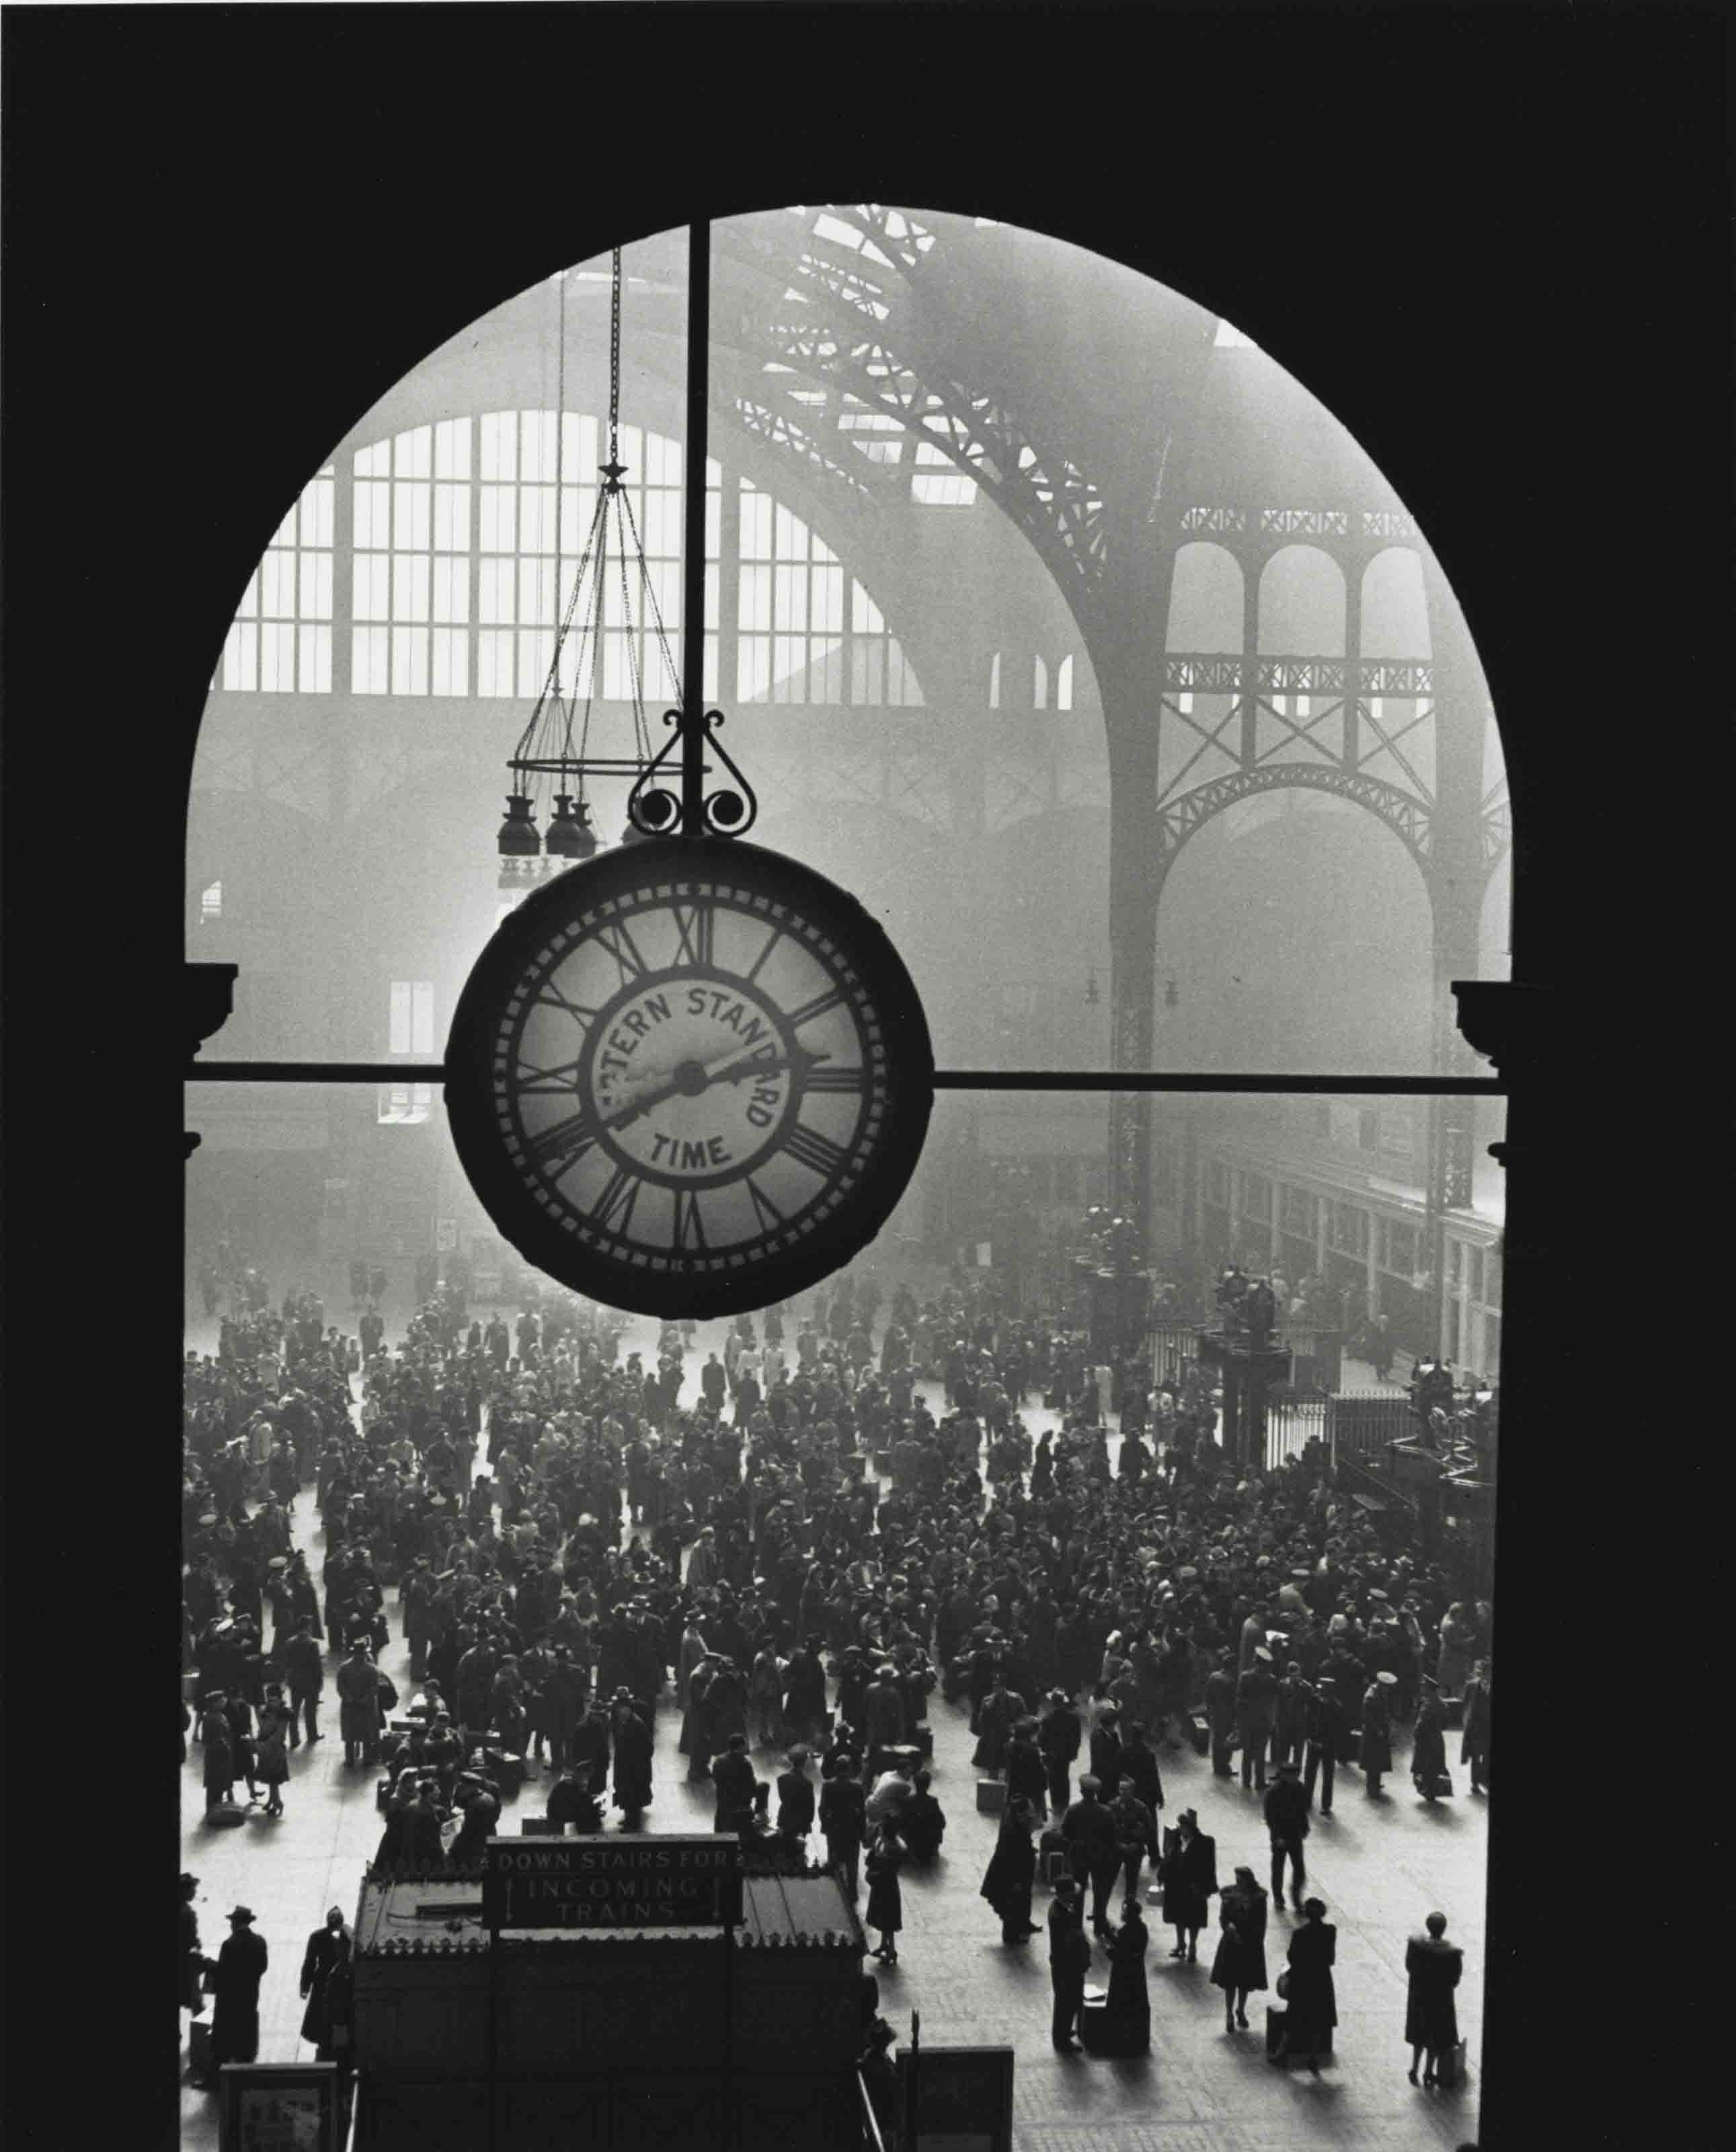 Famed clock at Pennsylvania Station in New York during wartime, 1943